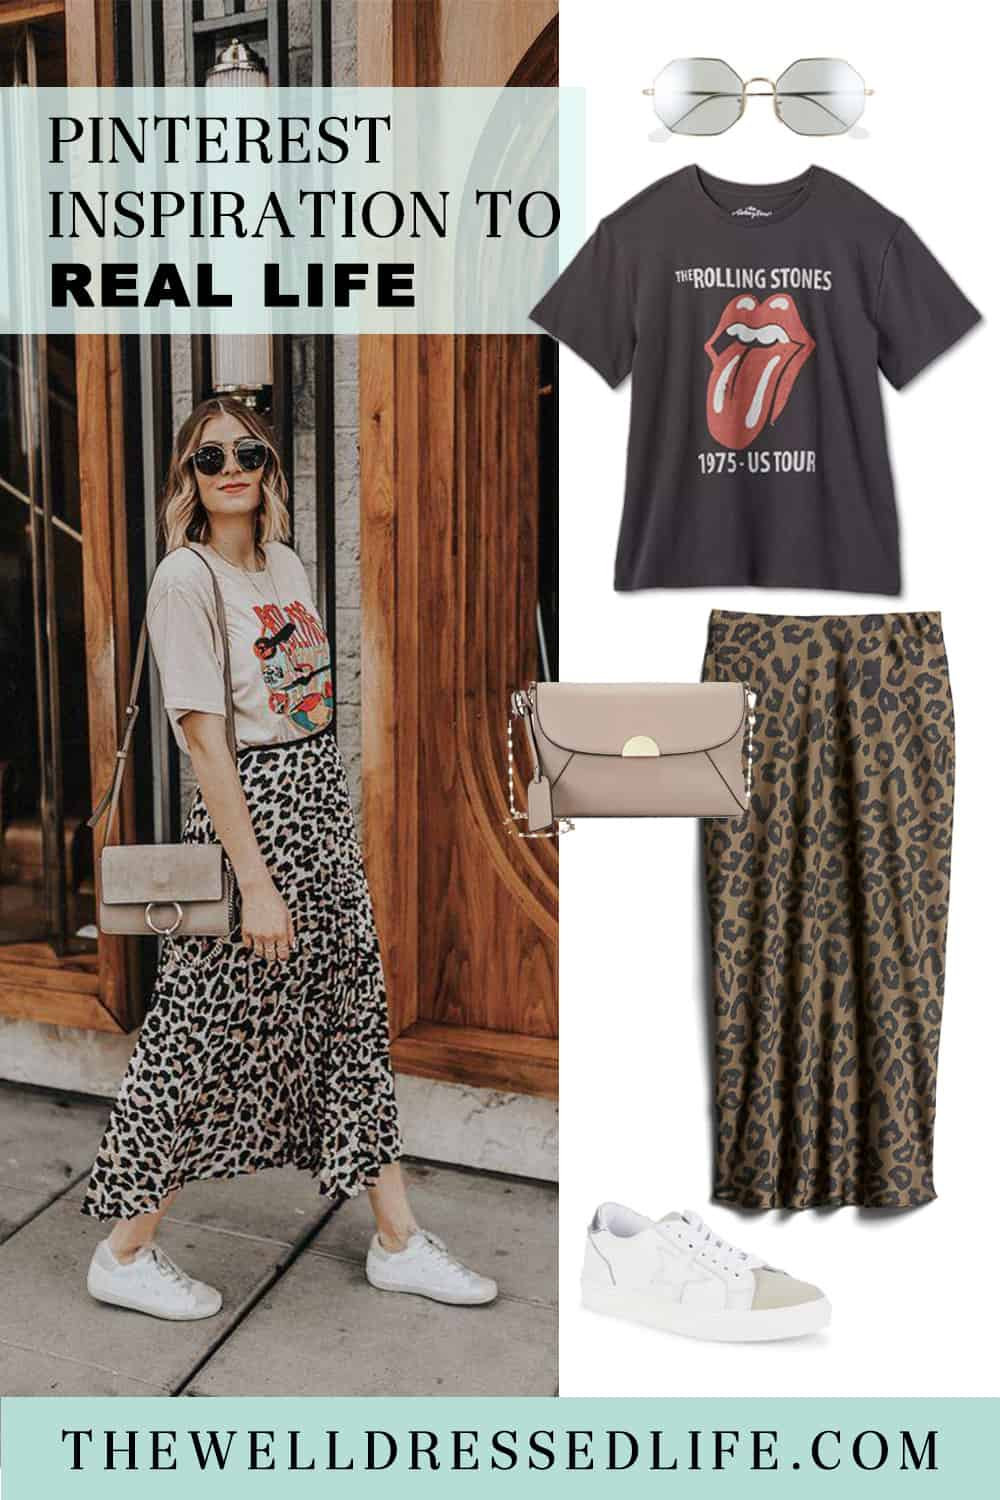 Pinterest in Real Life: How to Wear a Graphic Tee